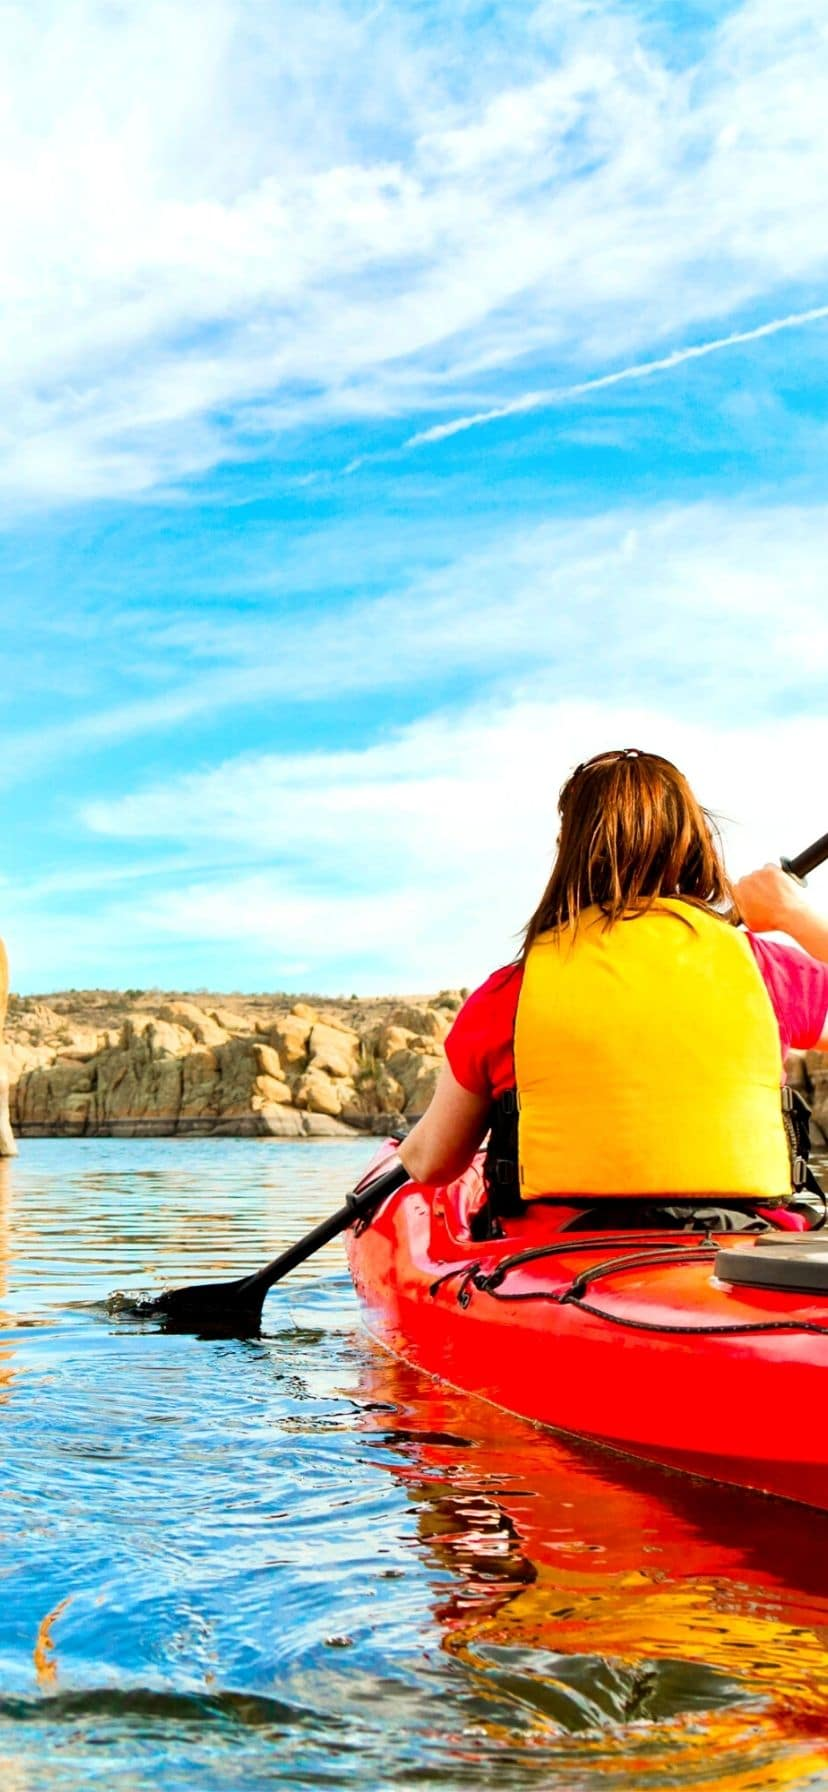 Prescott AZ kayaking is a bonus next to Old West towns and history.